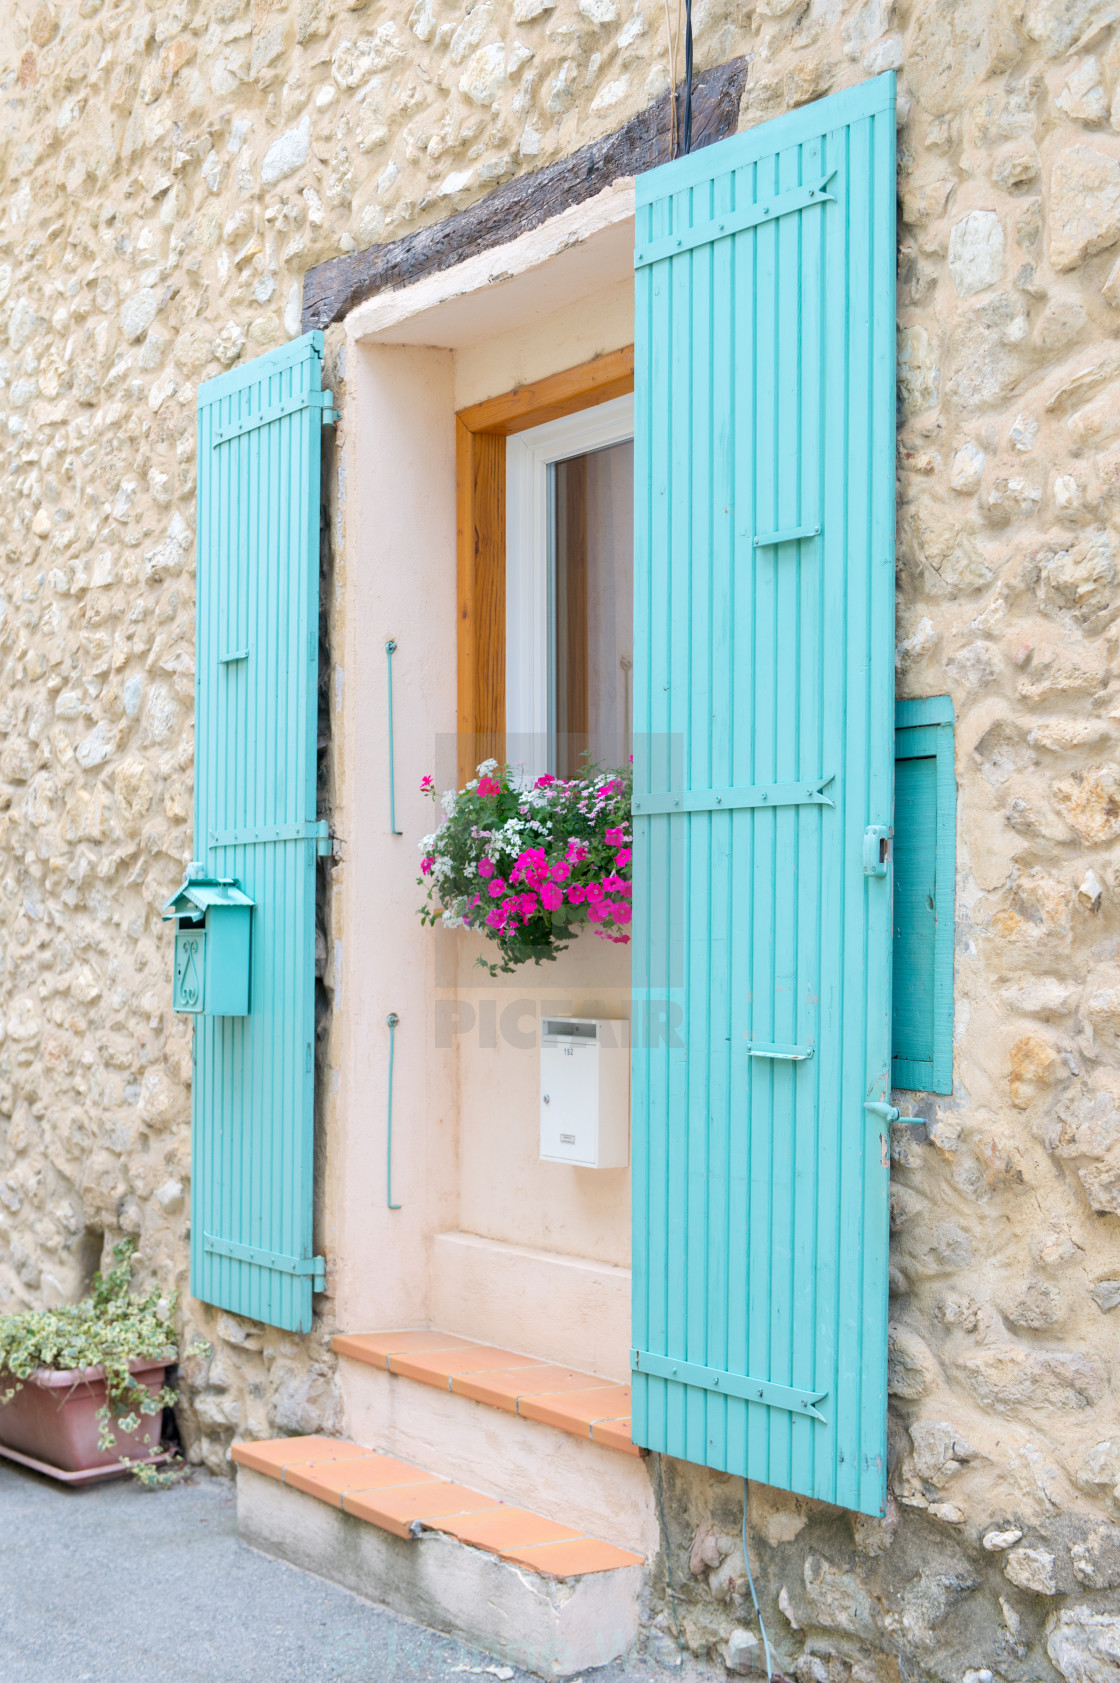 French Window With Typical Shutters License Download Or